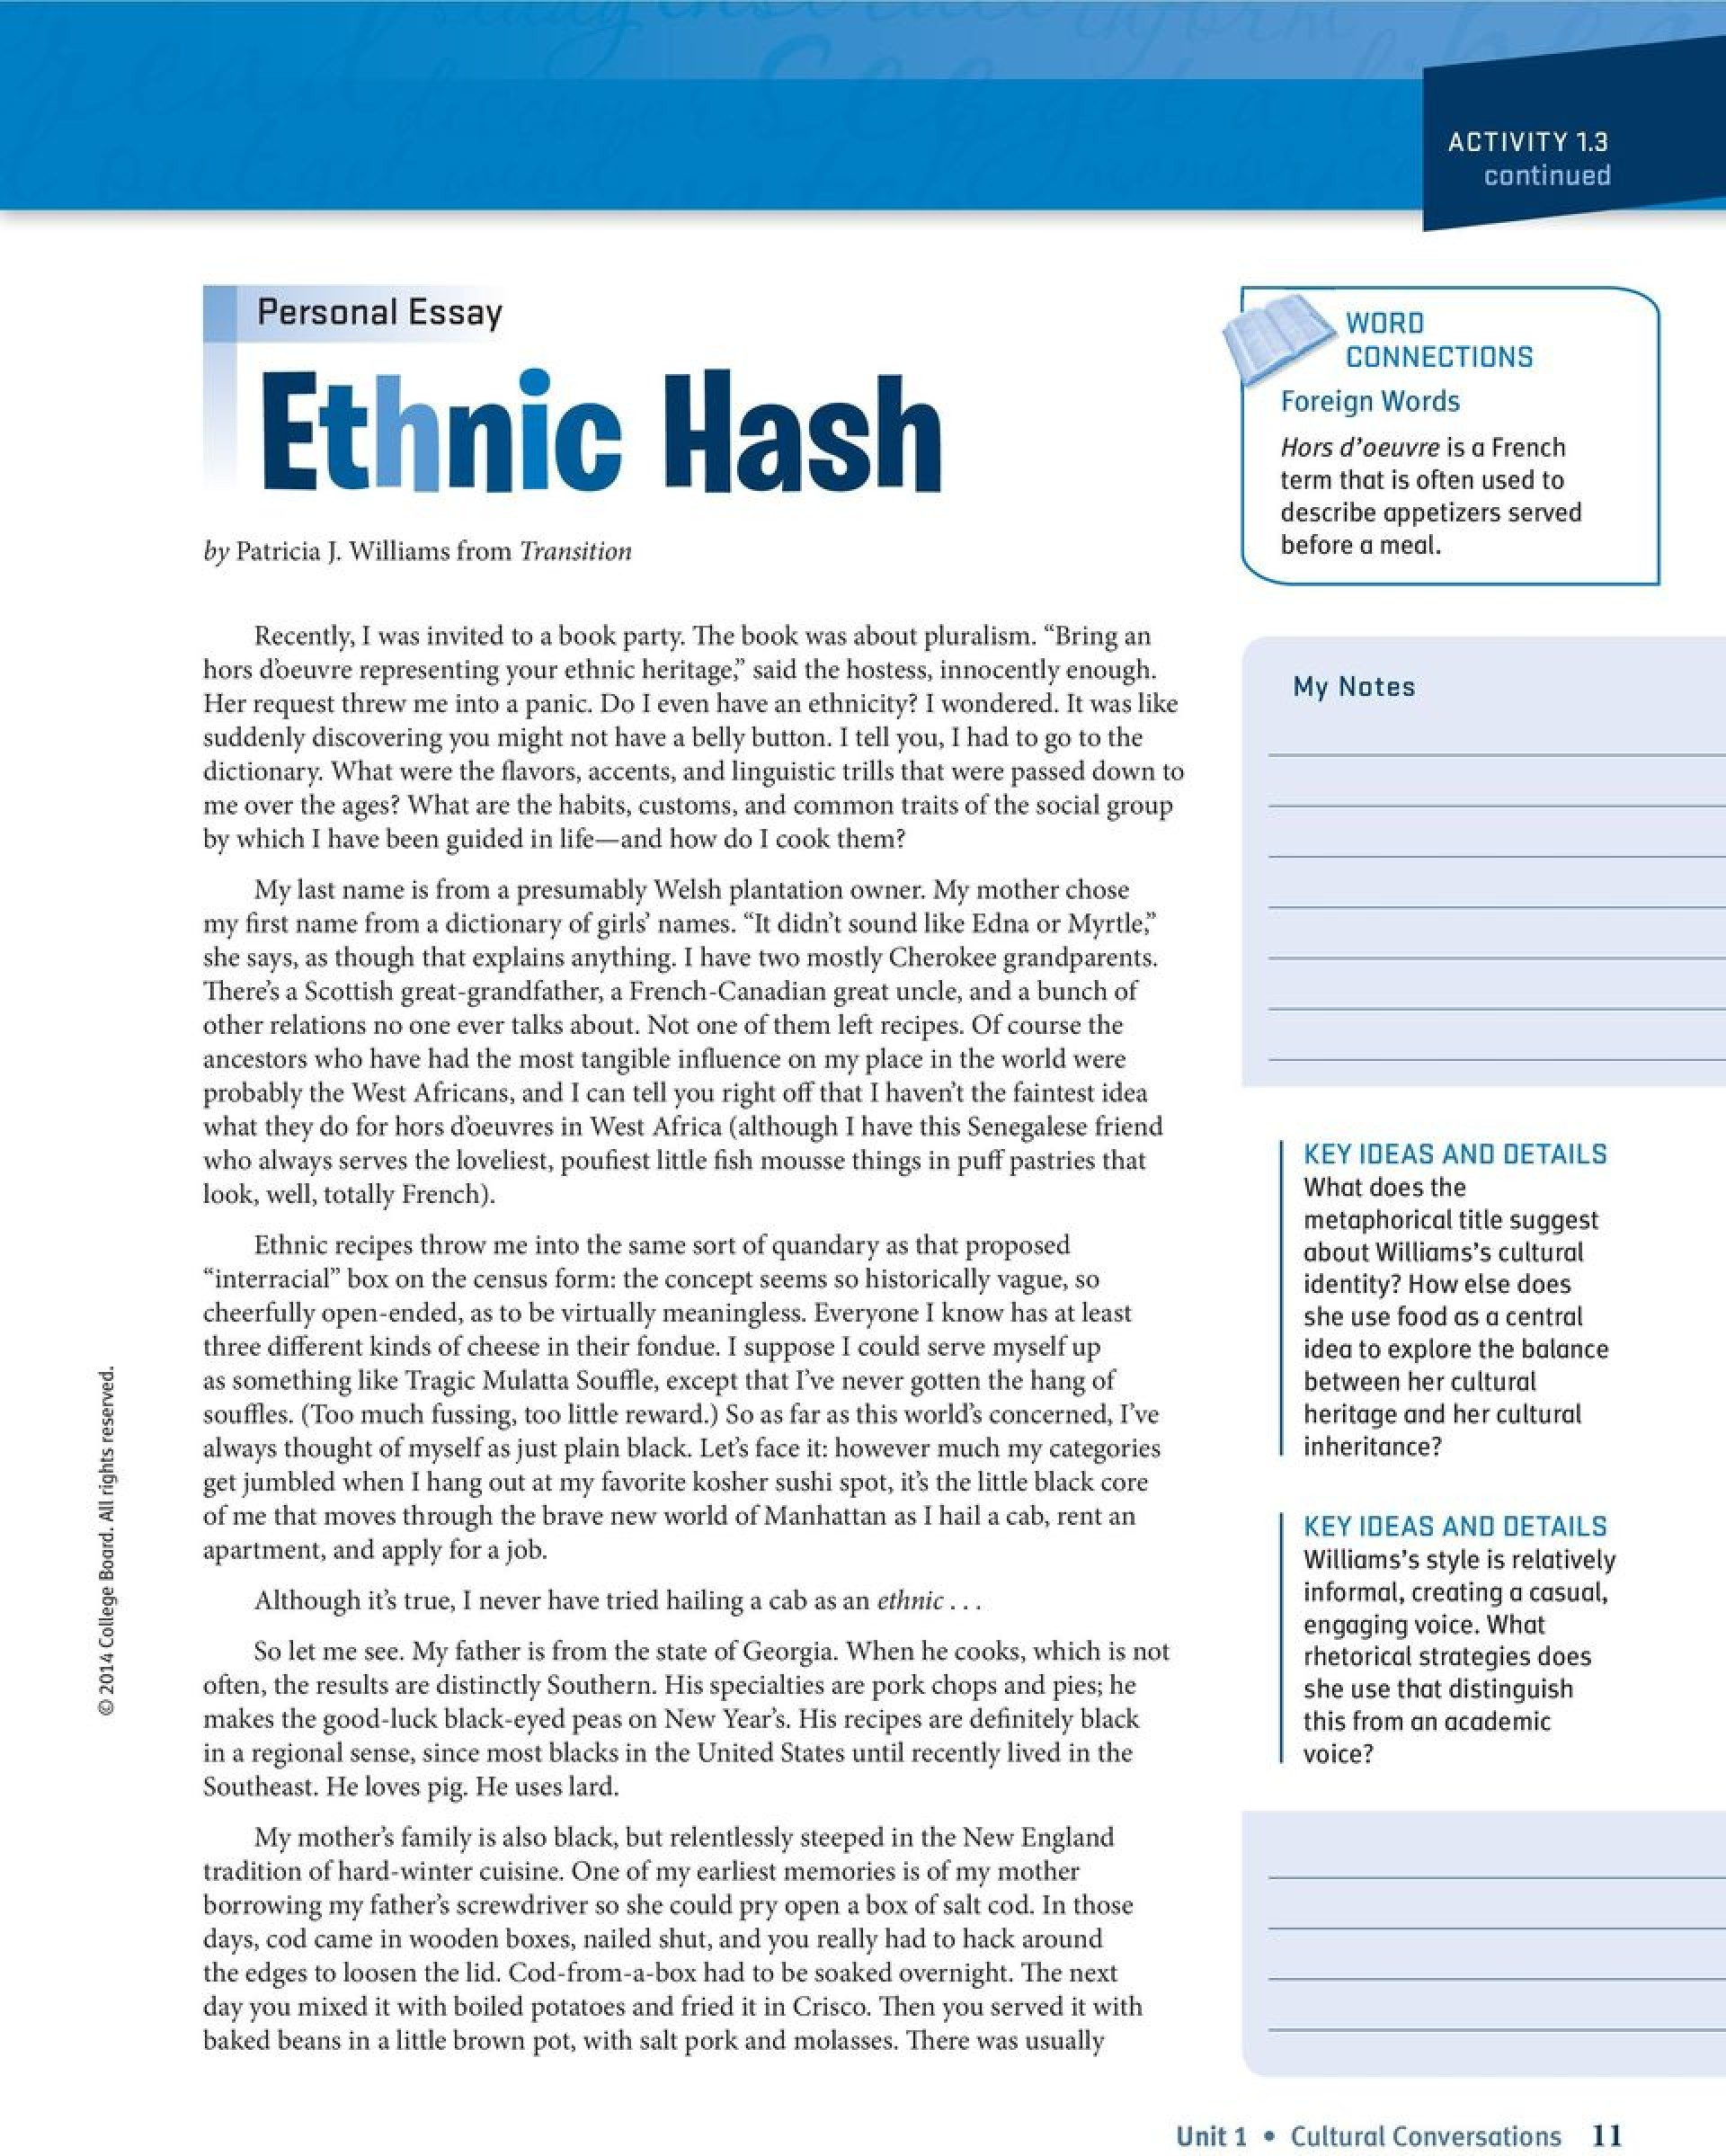 008 Where Worlds Collide Pico Iyer Essay Summary Example Page 11 Top 1920